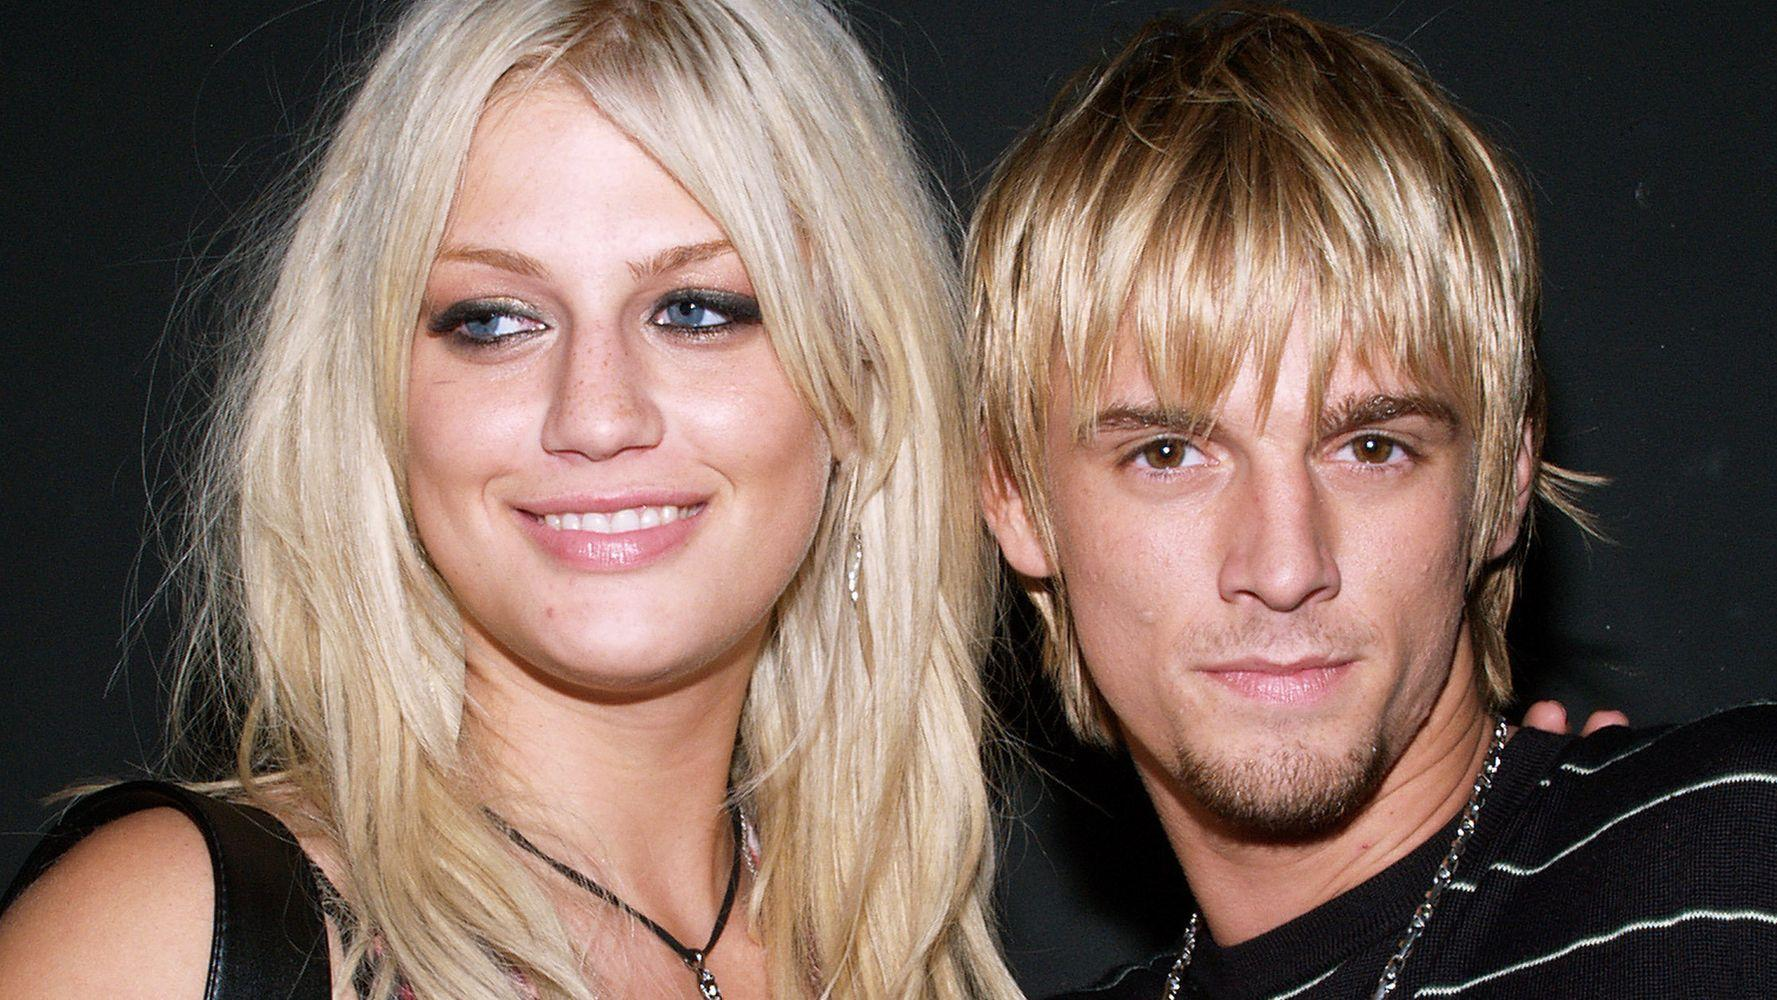 Aaron Carter Shockingly Claims His Late Sister Leslie Repeatedly Raped Him As A Child!